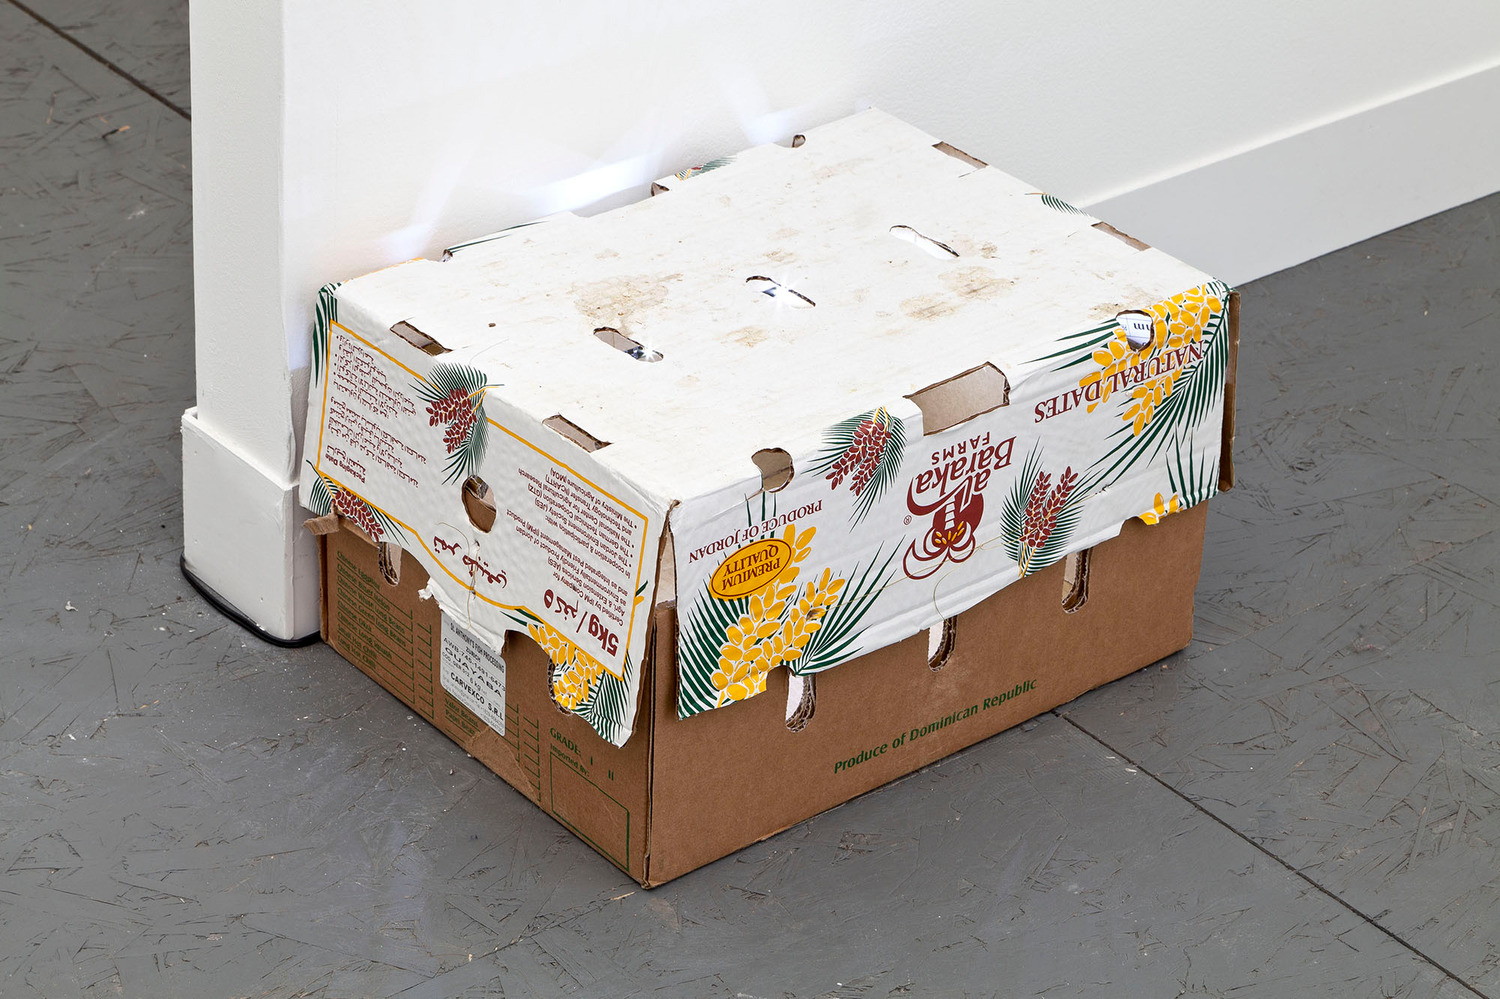 NO, 2013 (with Emanuel Rossetti), Cardboard fruit box, light fitting, 24 x 43 x 29 cm